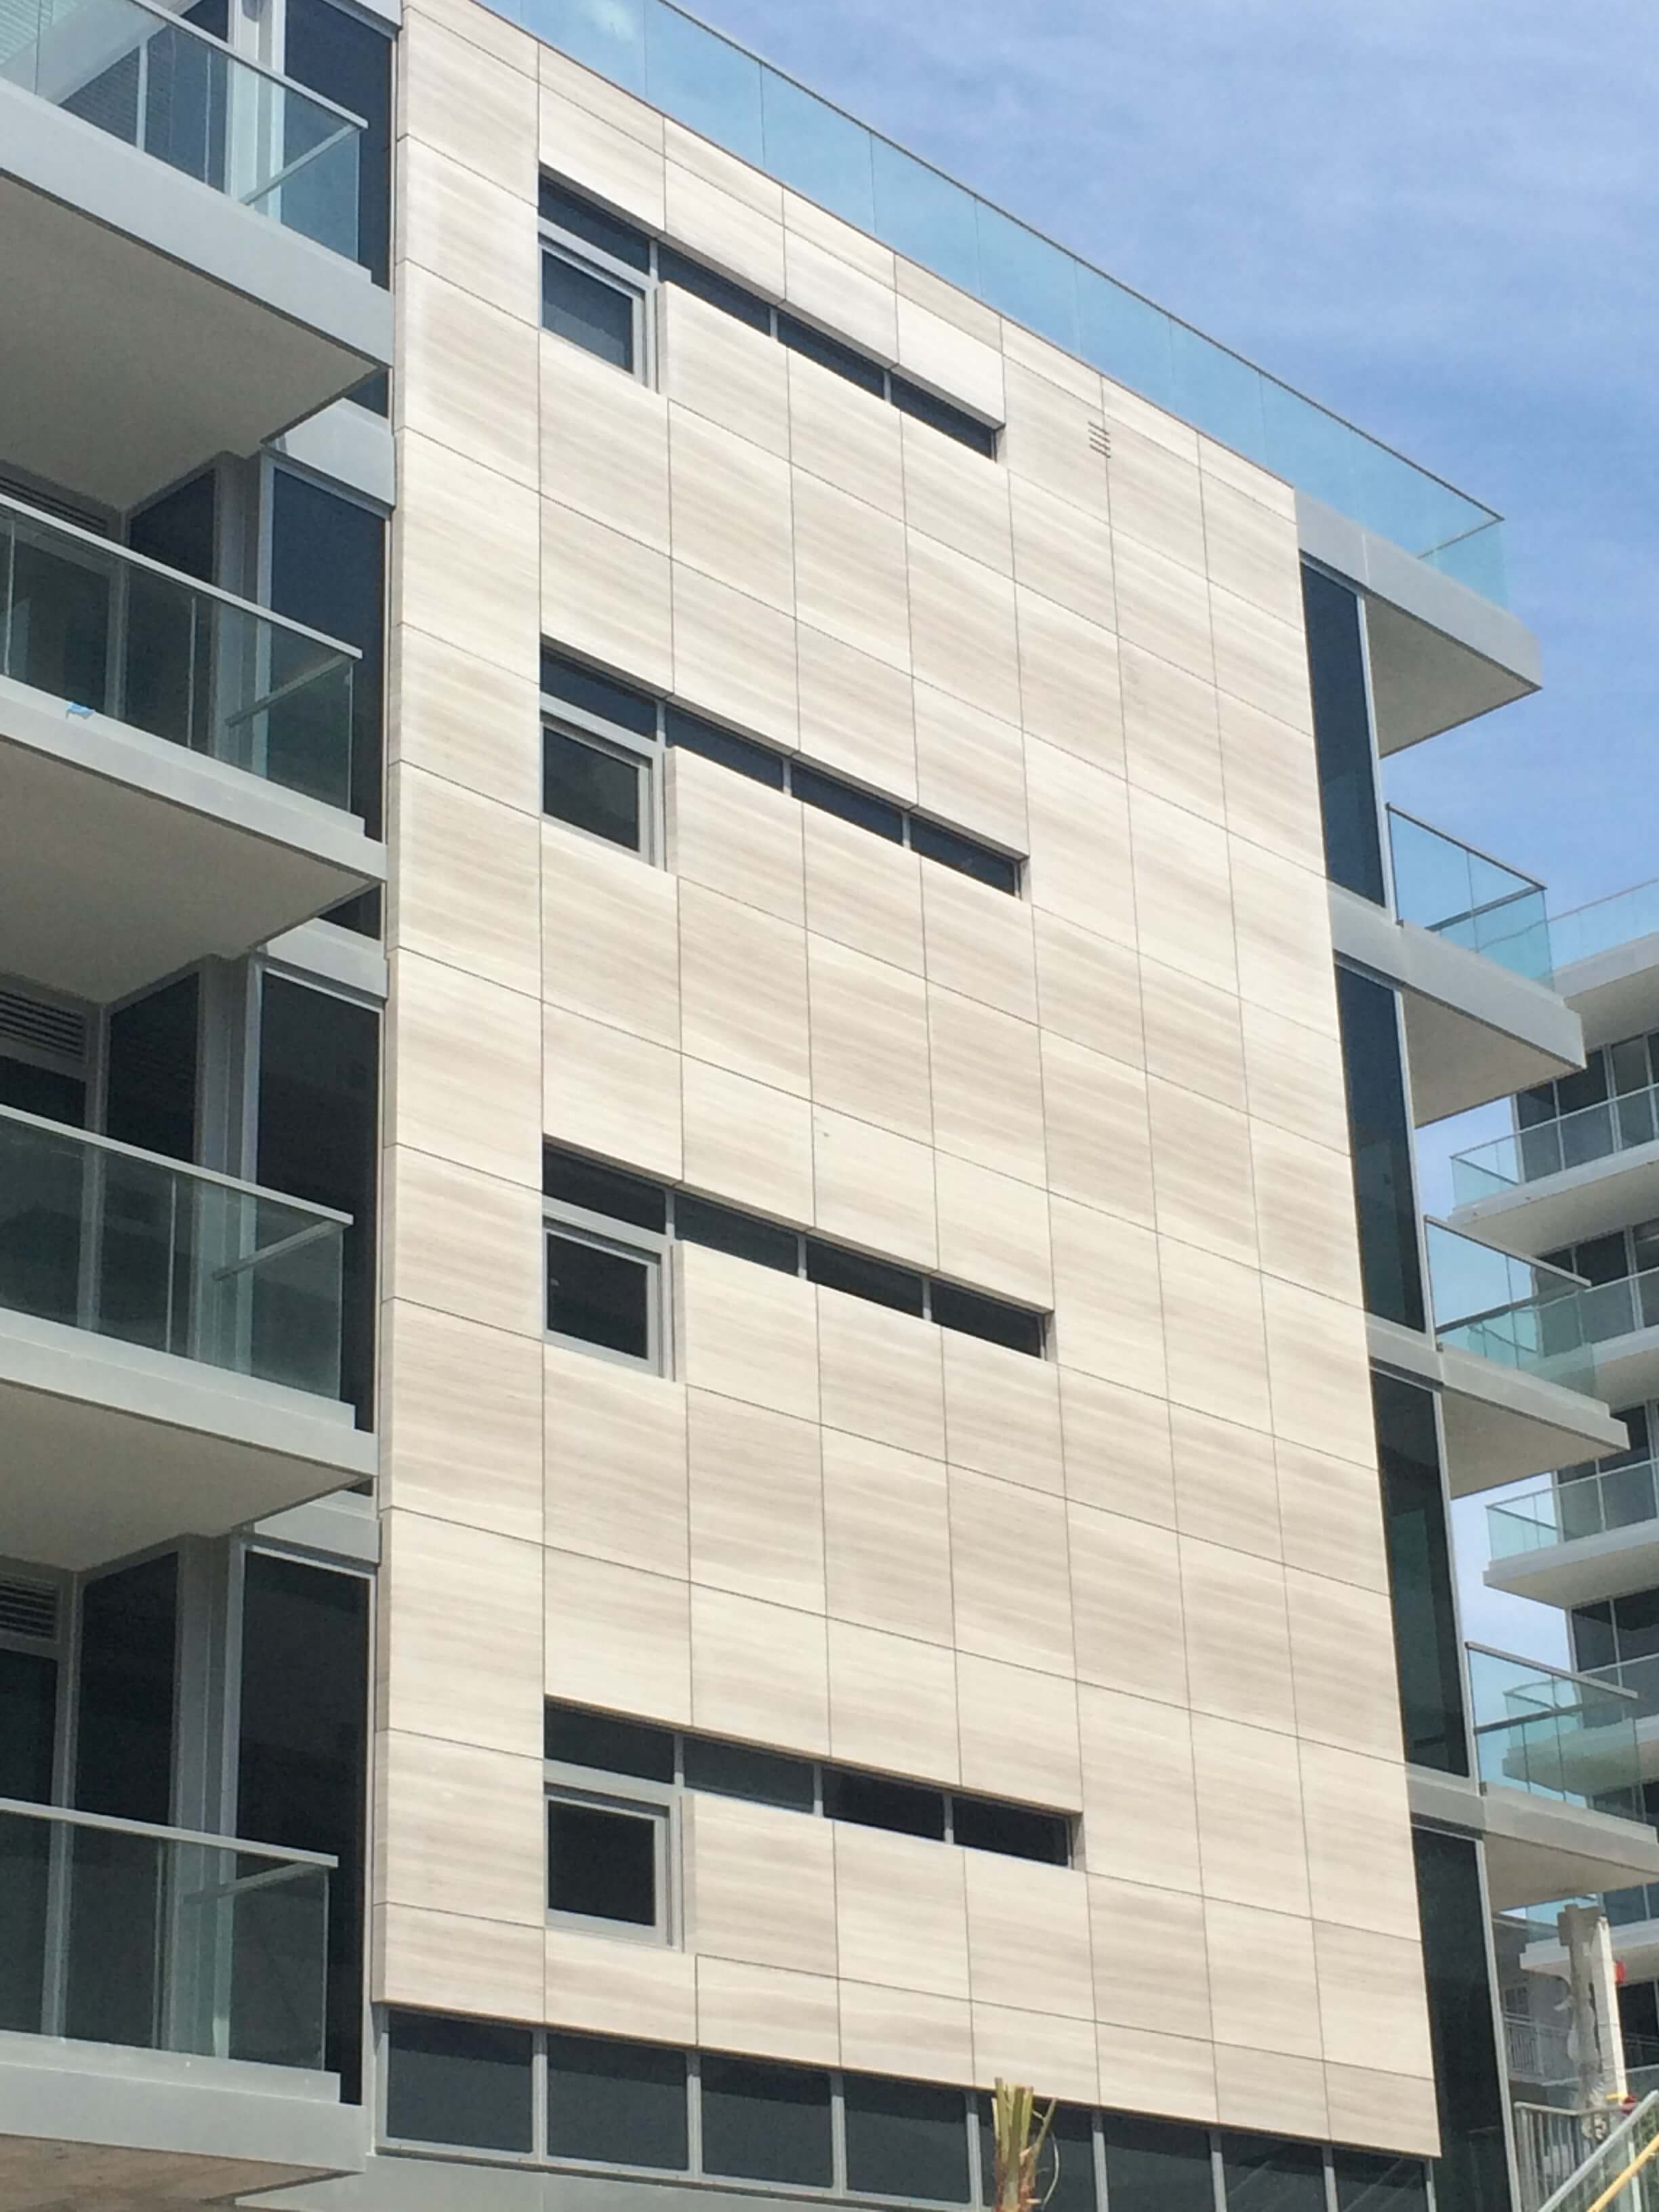 HyCOMB's Marble Honeycomb Panels installed as external cladding at 321 Ocean Drive, Miami